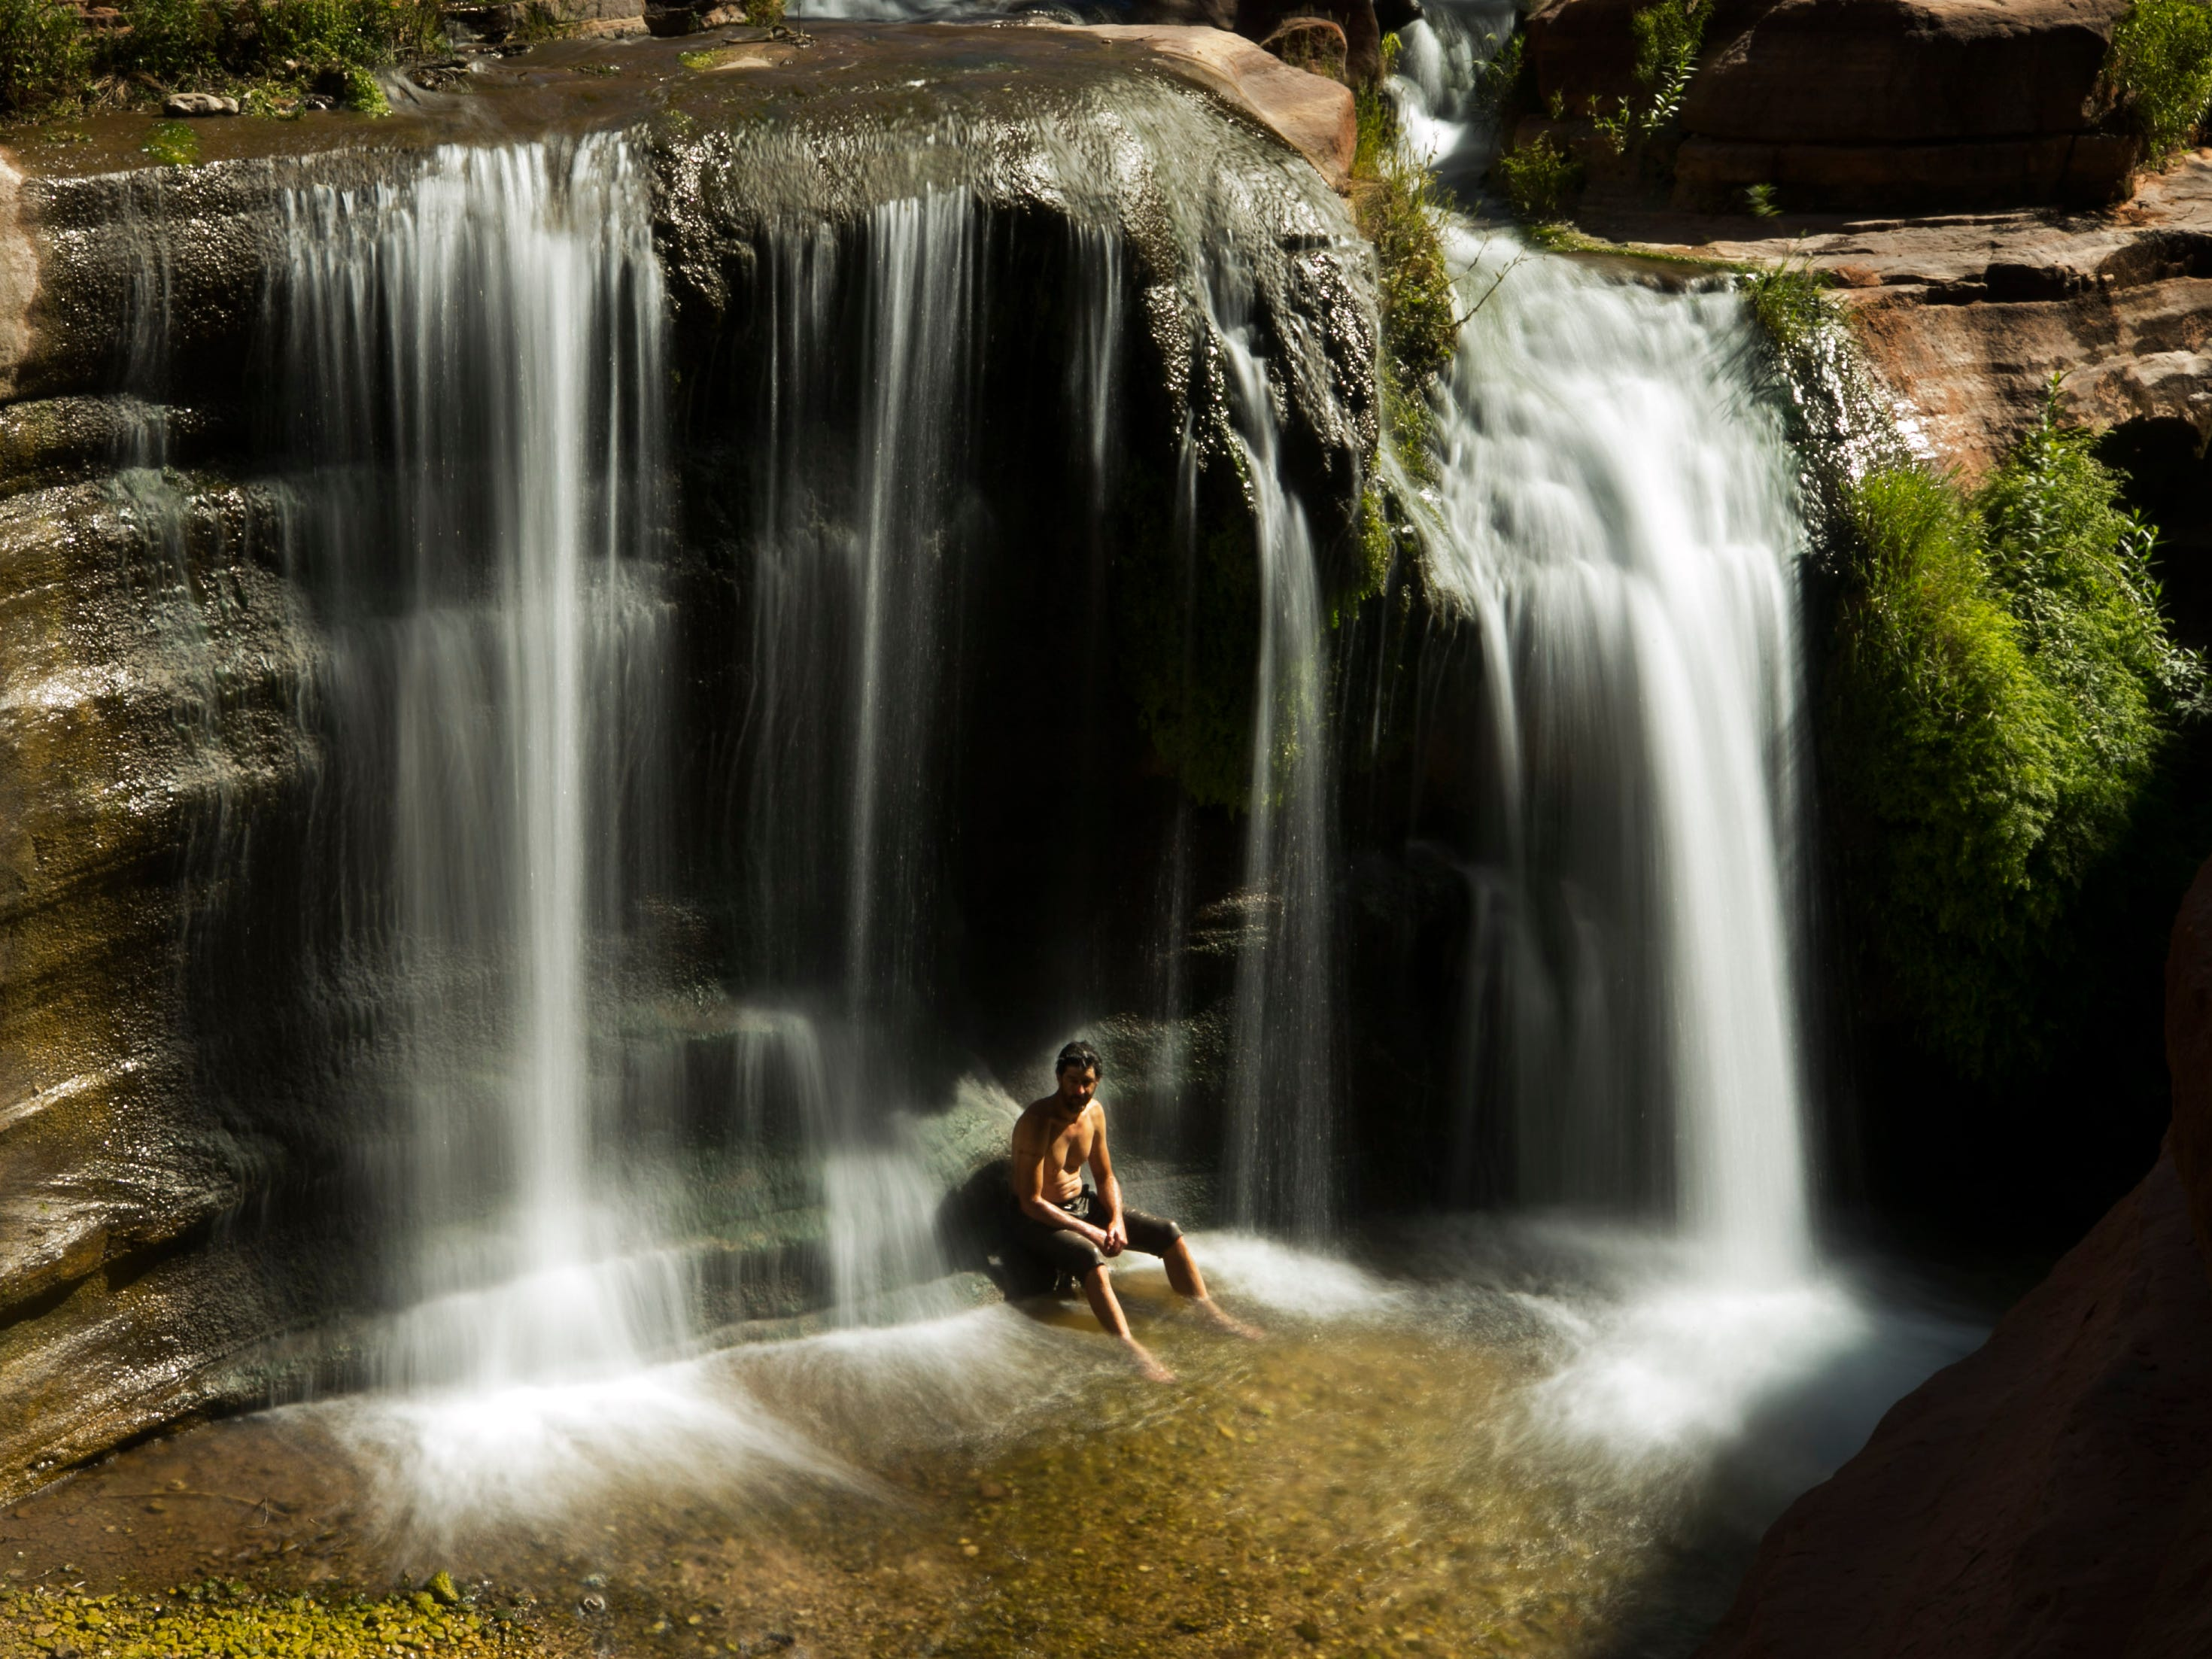 Ezra Jones sits at the base of a waterfall atop the Tapeats sandstone narrows of Deer Creek not far from the confluence with the Colorado River in Grand Canyon National Park. Hundreds of side canyon drainages meet the Colorado River in Grand Canyon and offer a glimpse into something not impacted by Glen Canyon Dam.